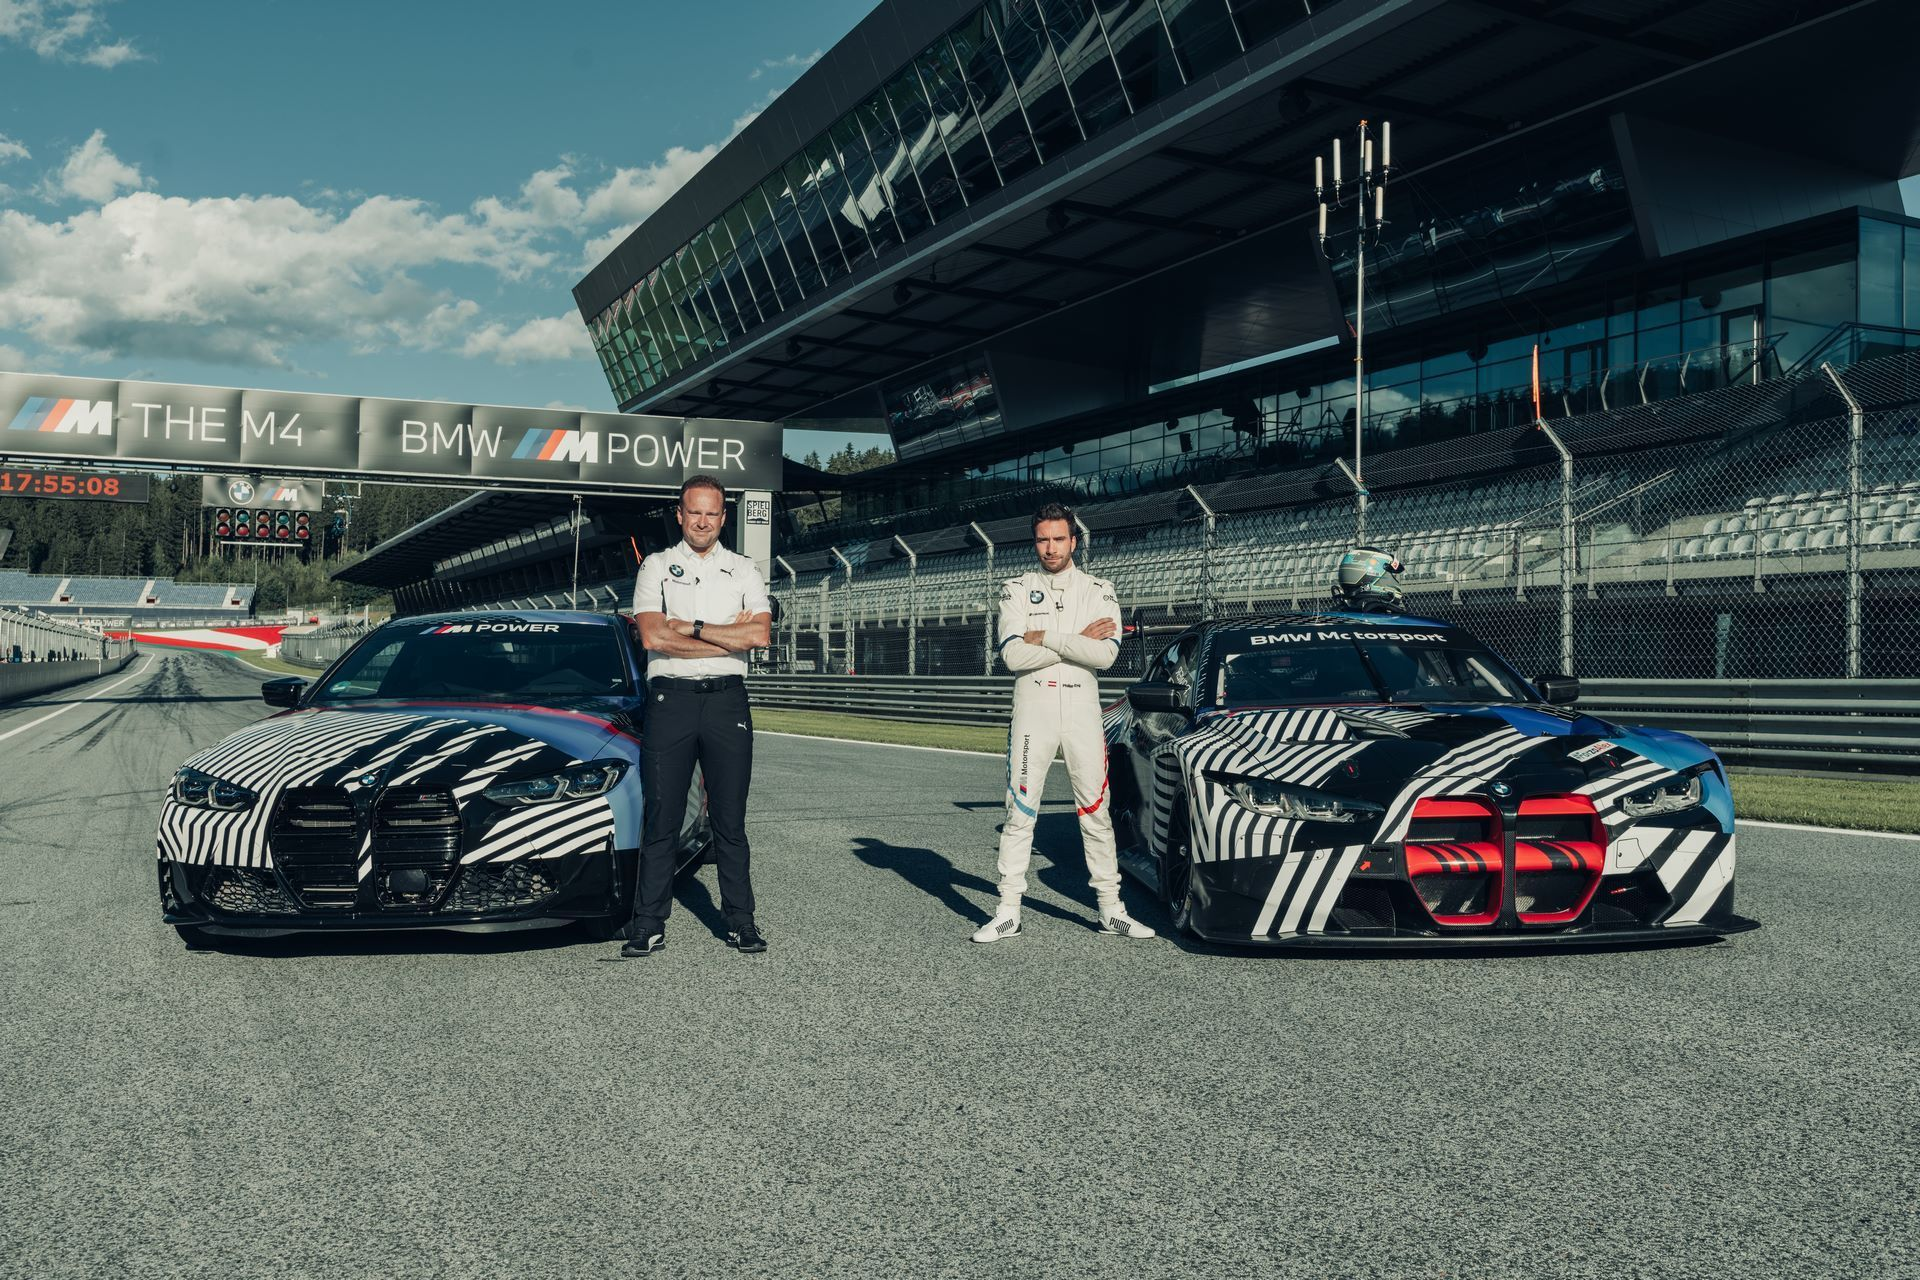 New-BMW-M4-Coupe-and-BMW-M4-GT3-prototypes-2